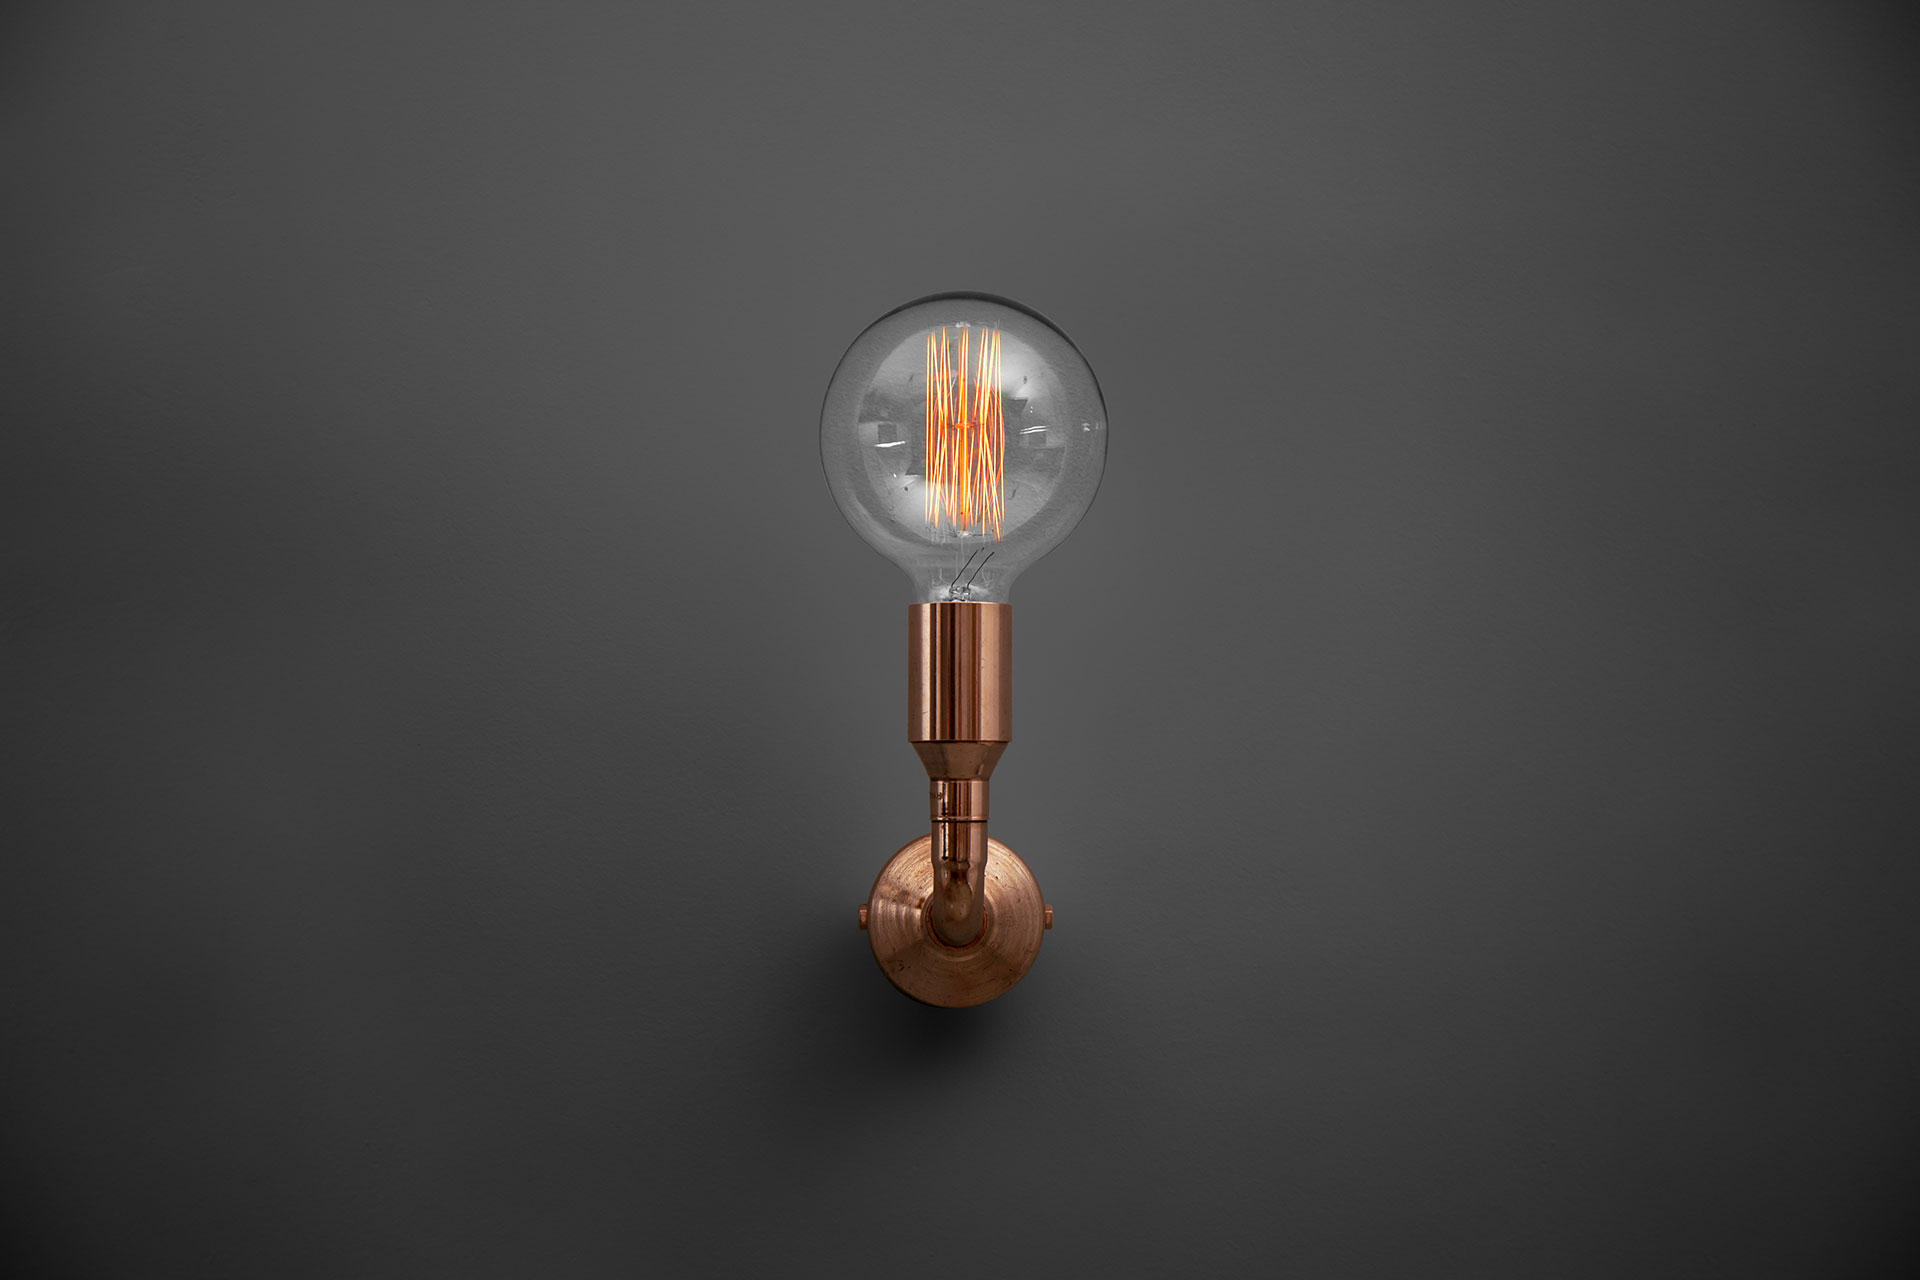 Industrial design copper sconce with vintage Edison bulb